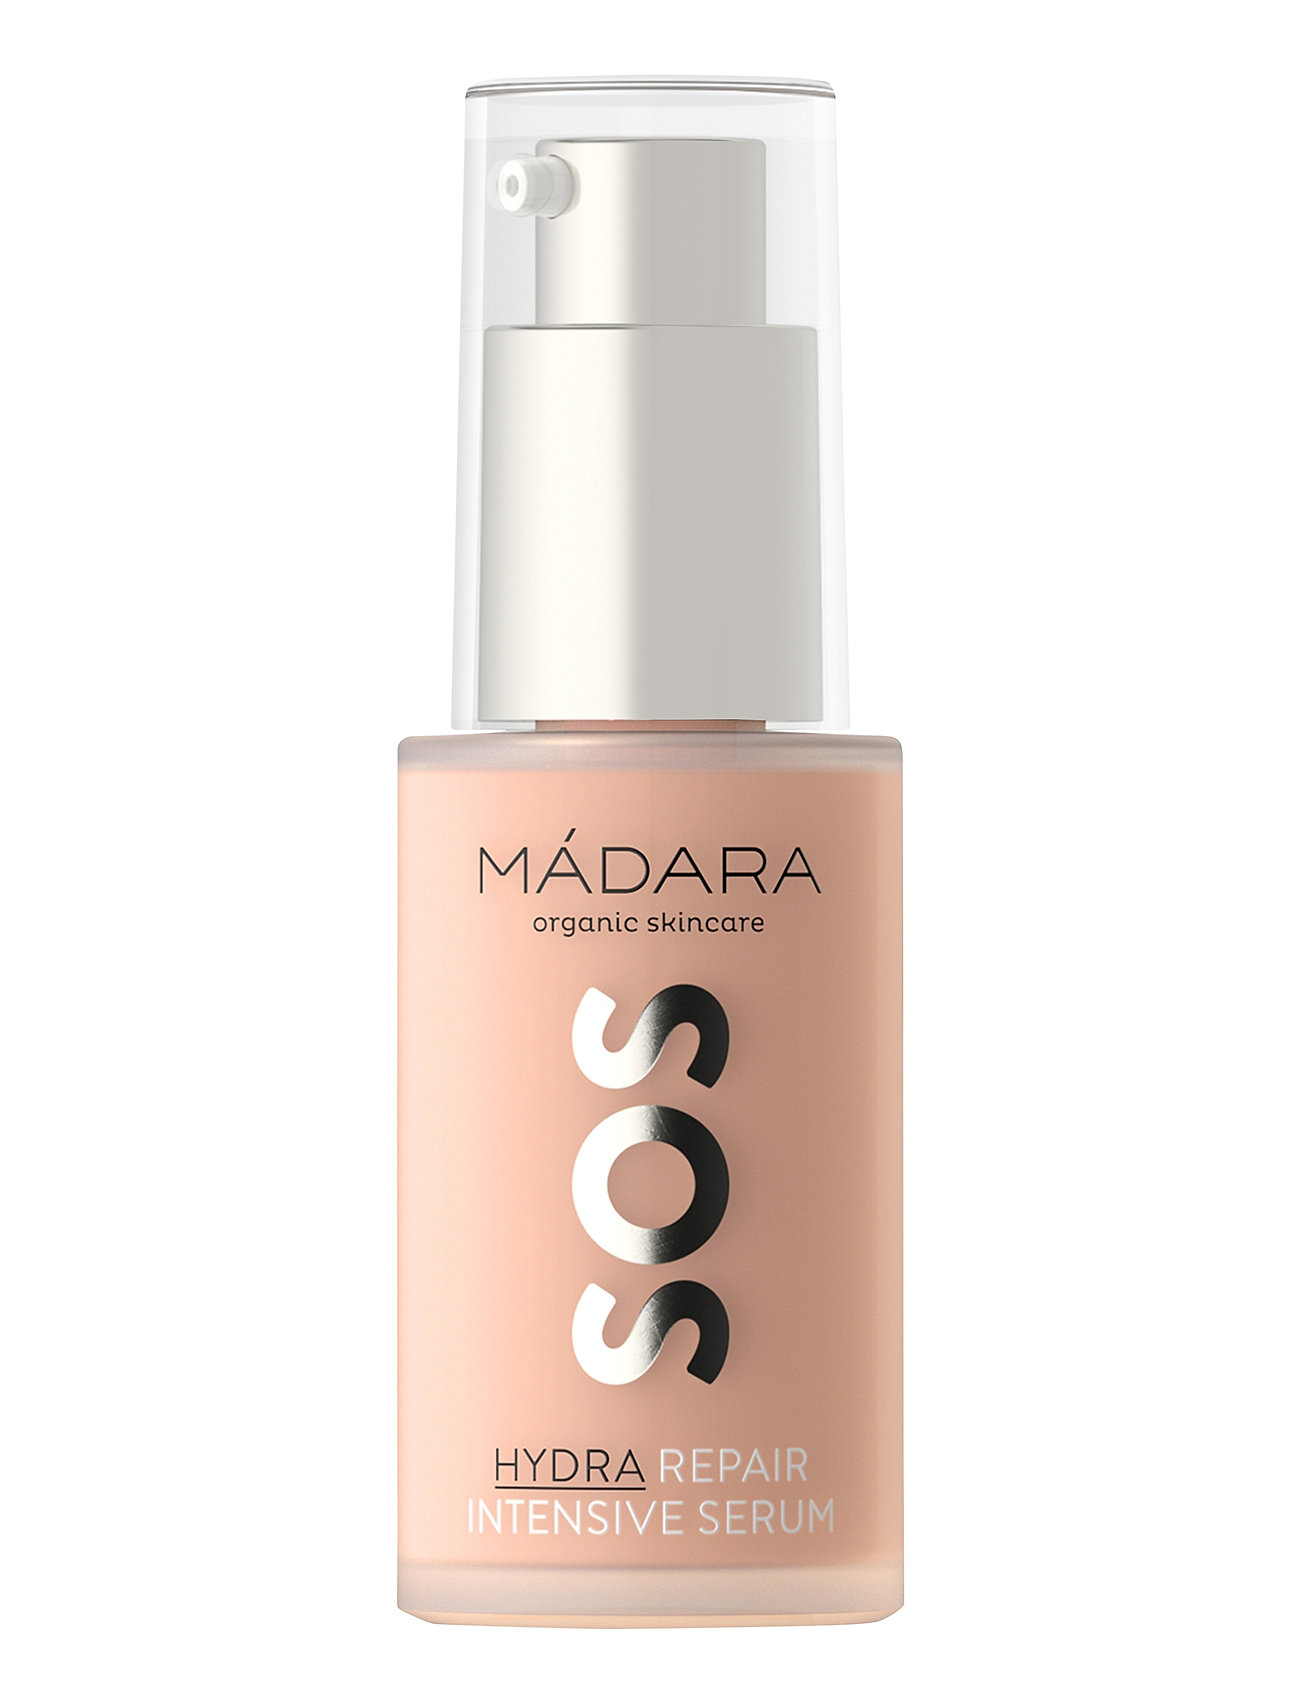 Image of Sos Hydra Serum Repair Intensive , 30 Ml Serum Ansigtspleje Nude MÁDARA (3160757001)